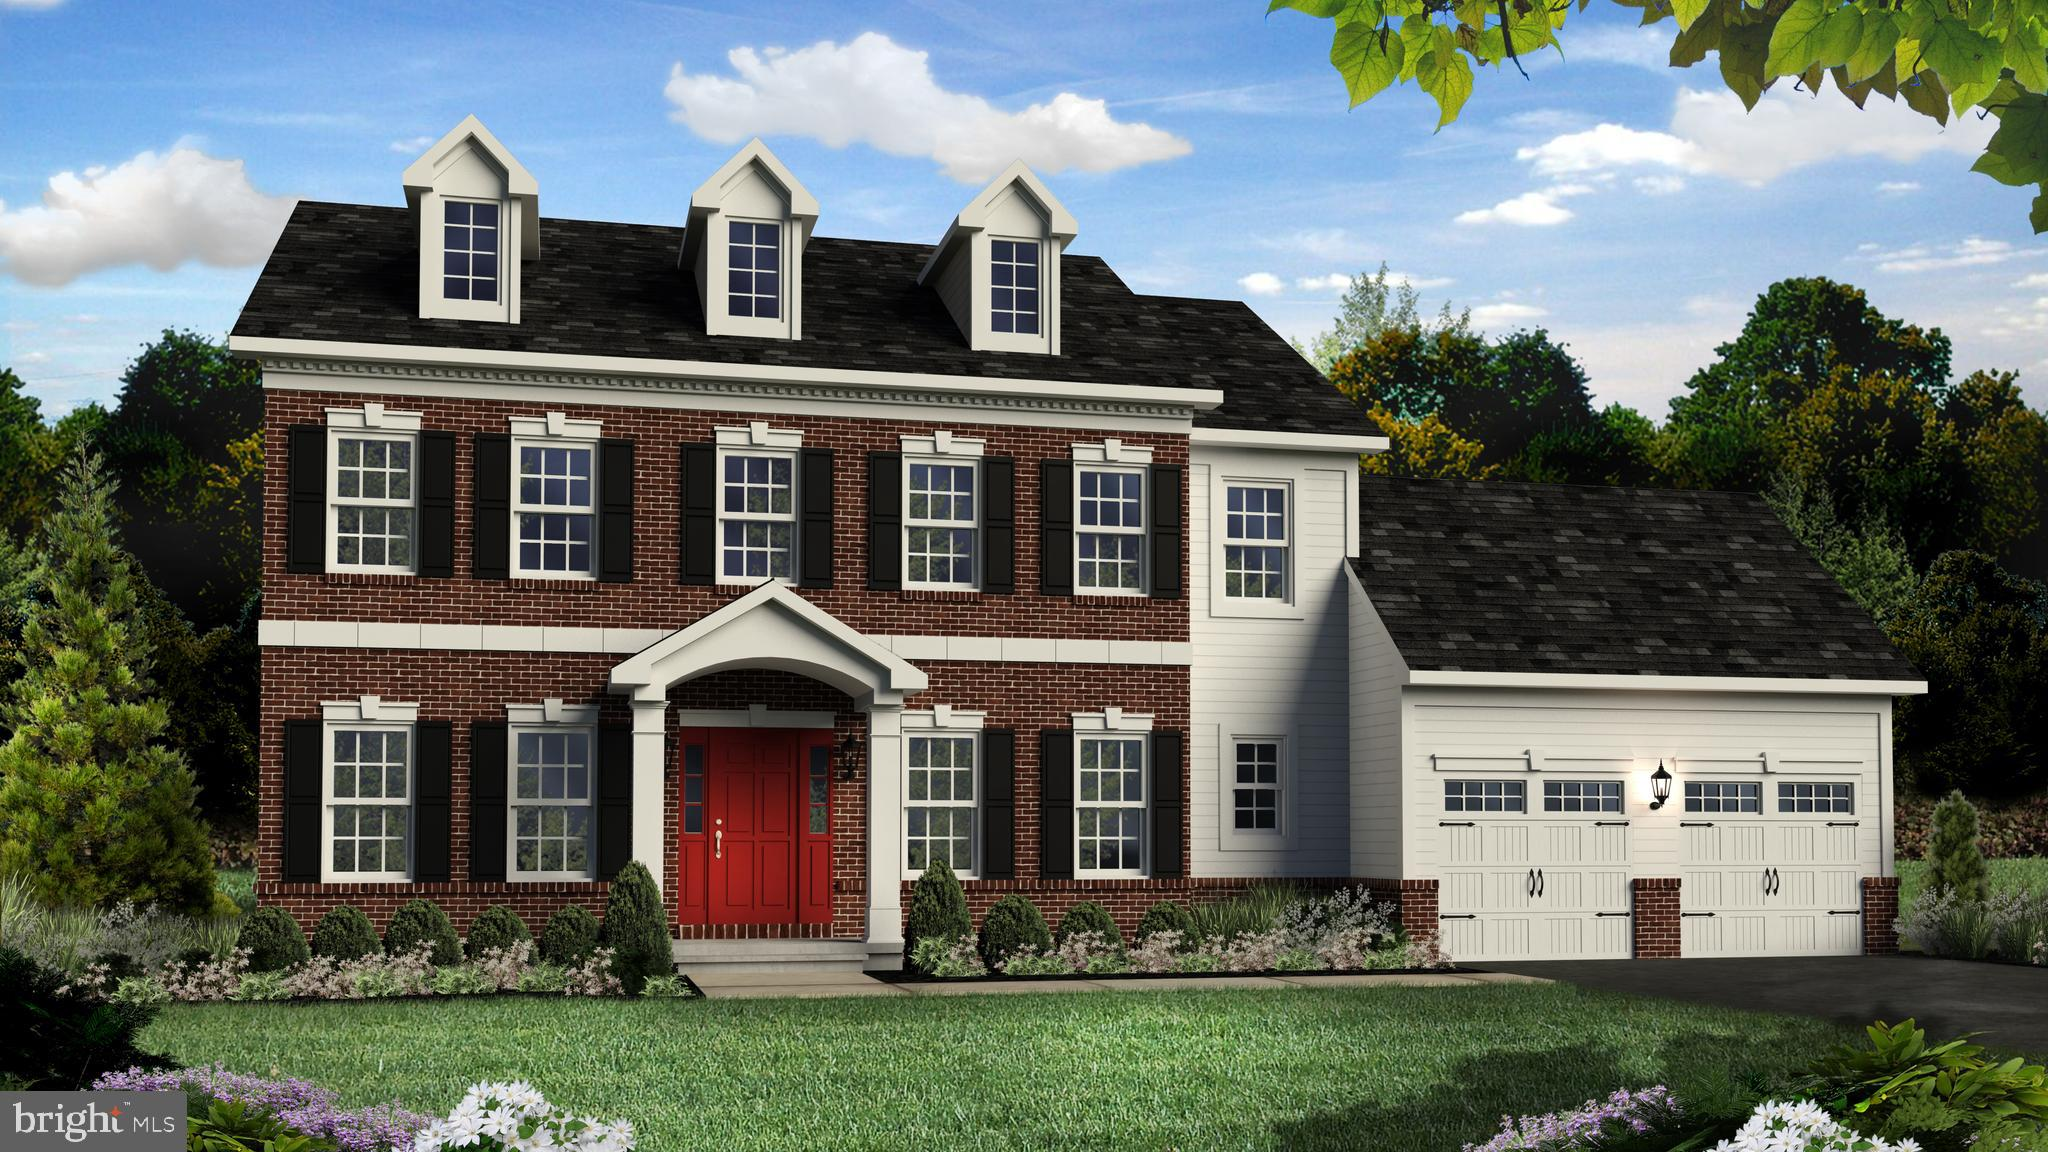 Middleton Model BAYBERRY AVENUE, PENNSBURG, PA 18073